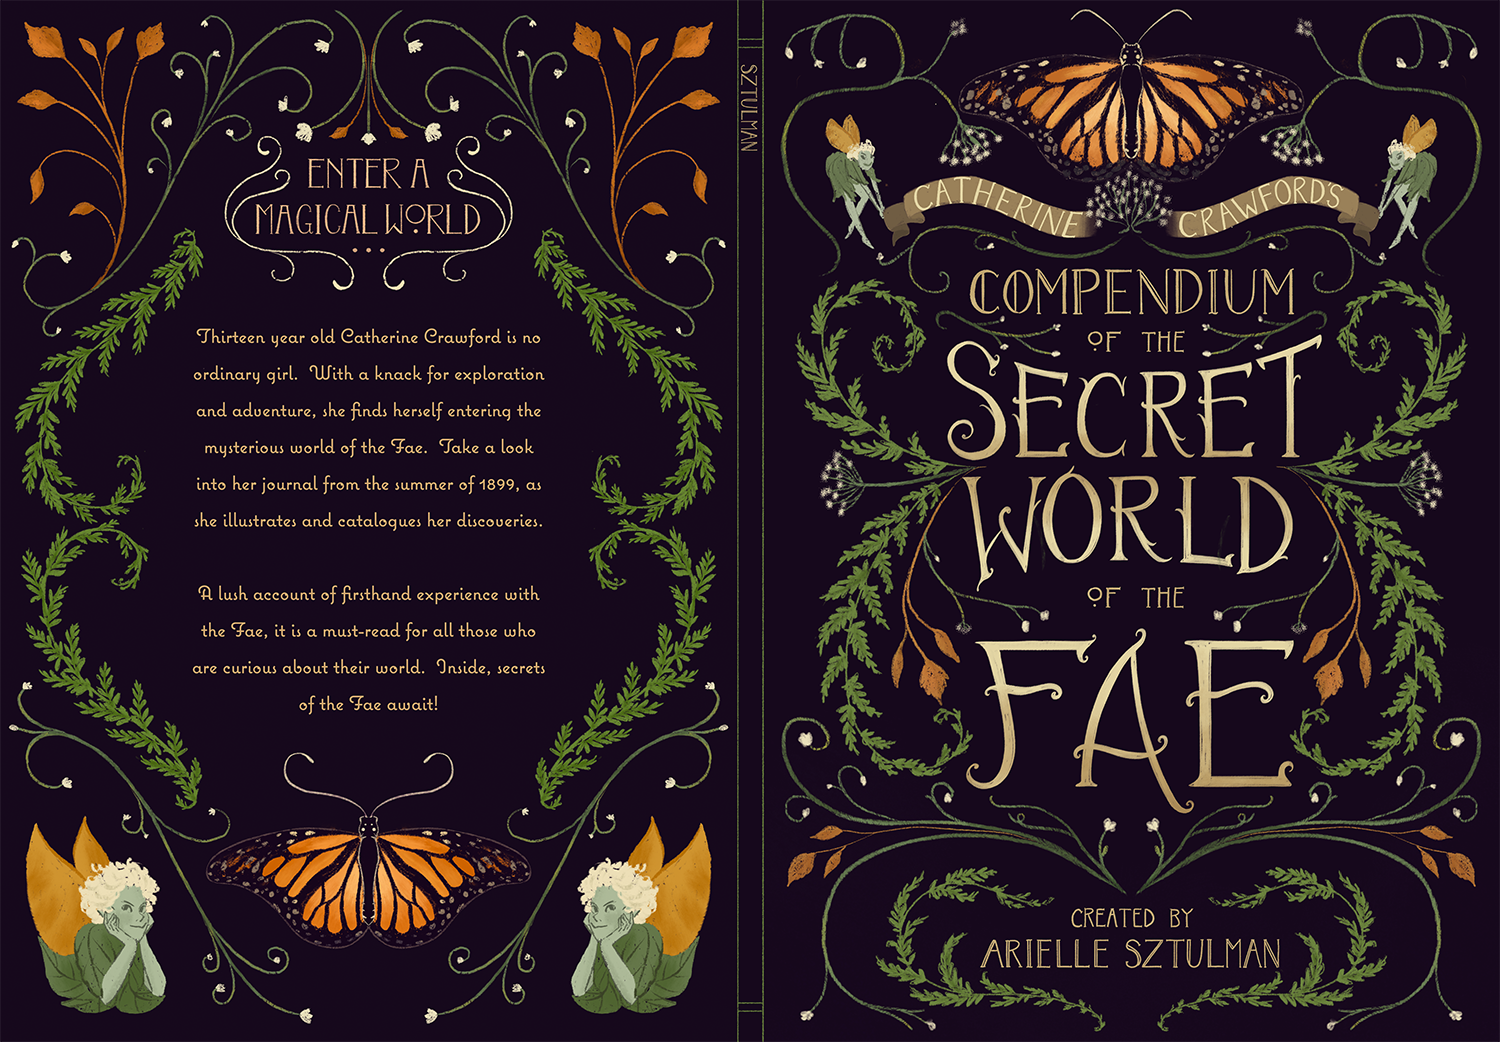 Catherine Crawford's Compendium of the Secret World of the Fae